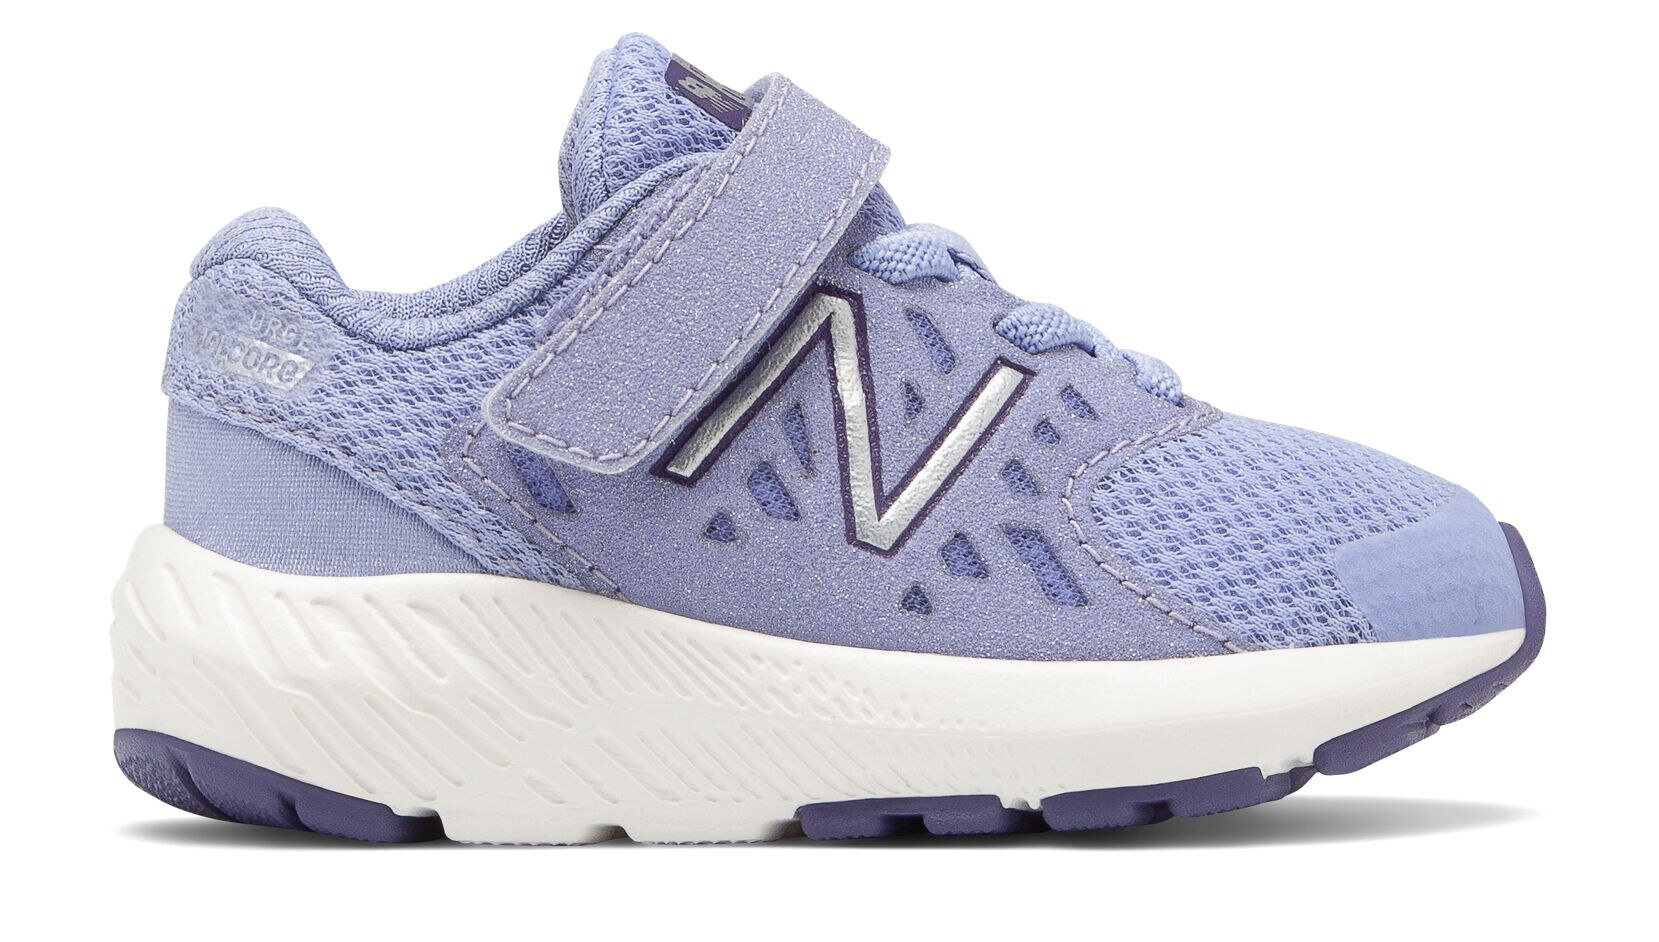 FuelCore Urge Velcro - Amethyst / Violet by New Balance - Ponseti's Shoes